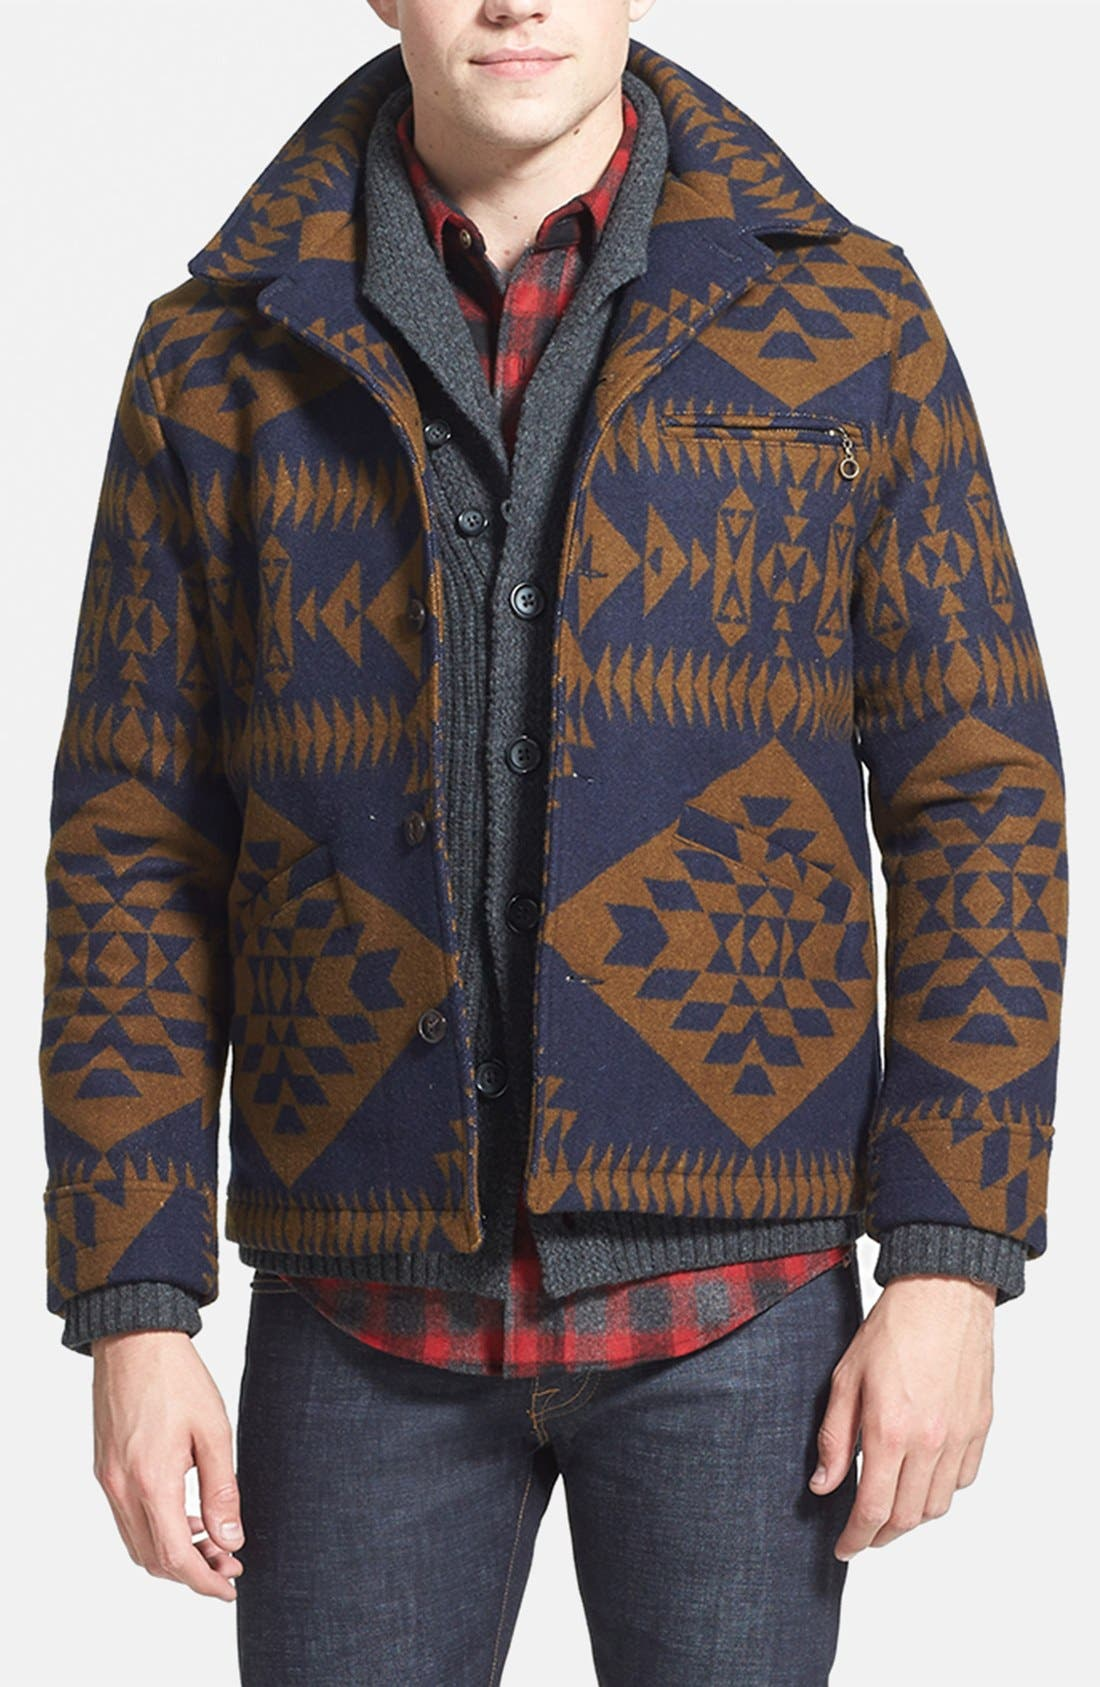 Alternate Image 1 Selected - Pendleton Jacket, 7 Diamonds Sweater, Pendleton Fitted Flannel Shirt & J Brand Skinny Fit Jeans